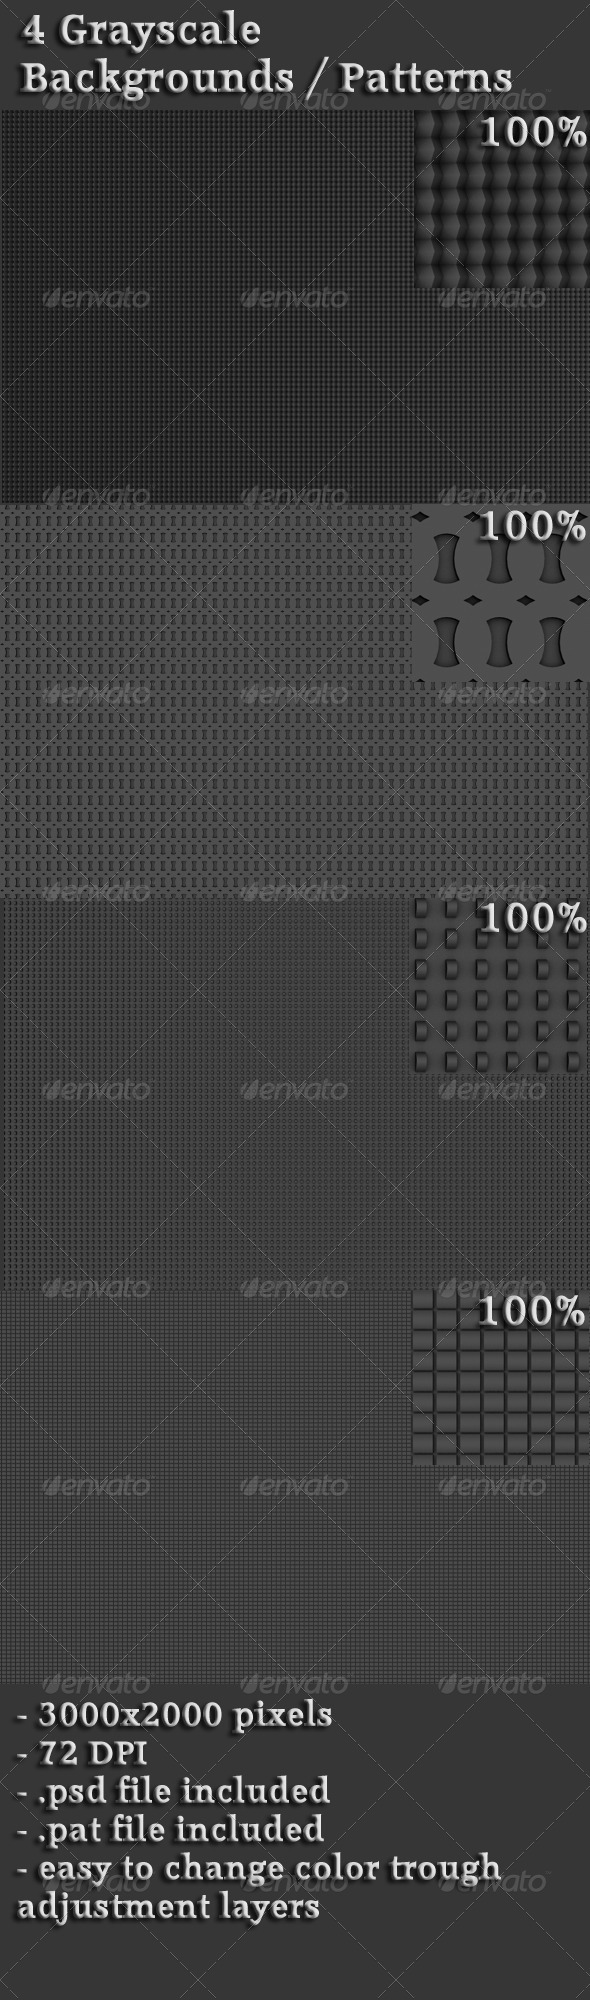 Grayscale Backgrounds / Patterns - Patterns Backgrounds